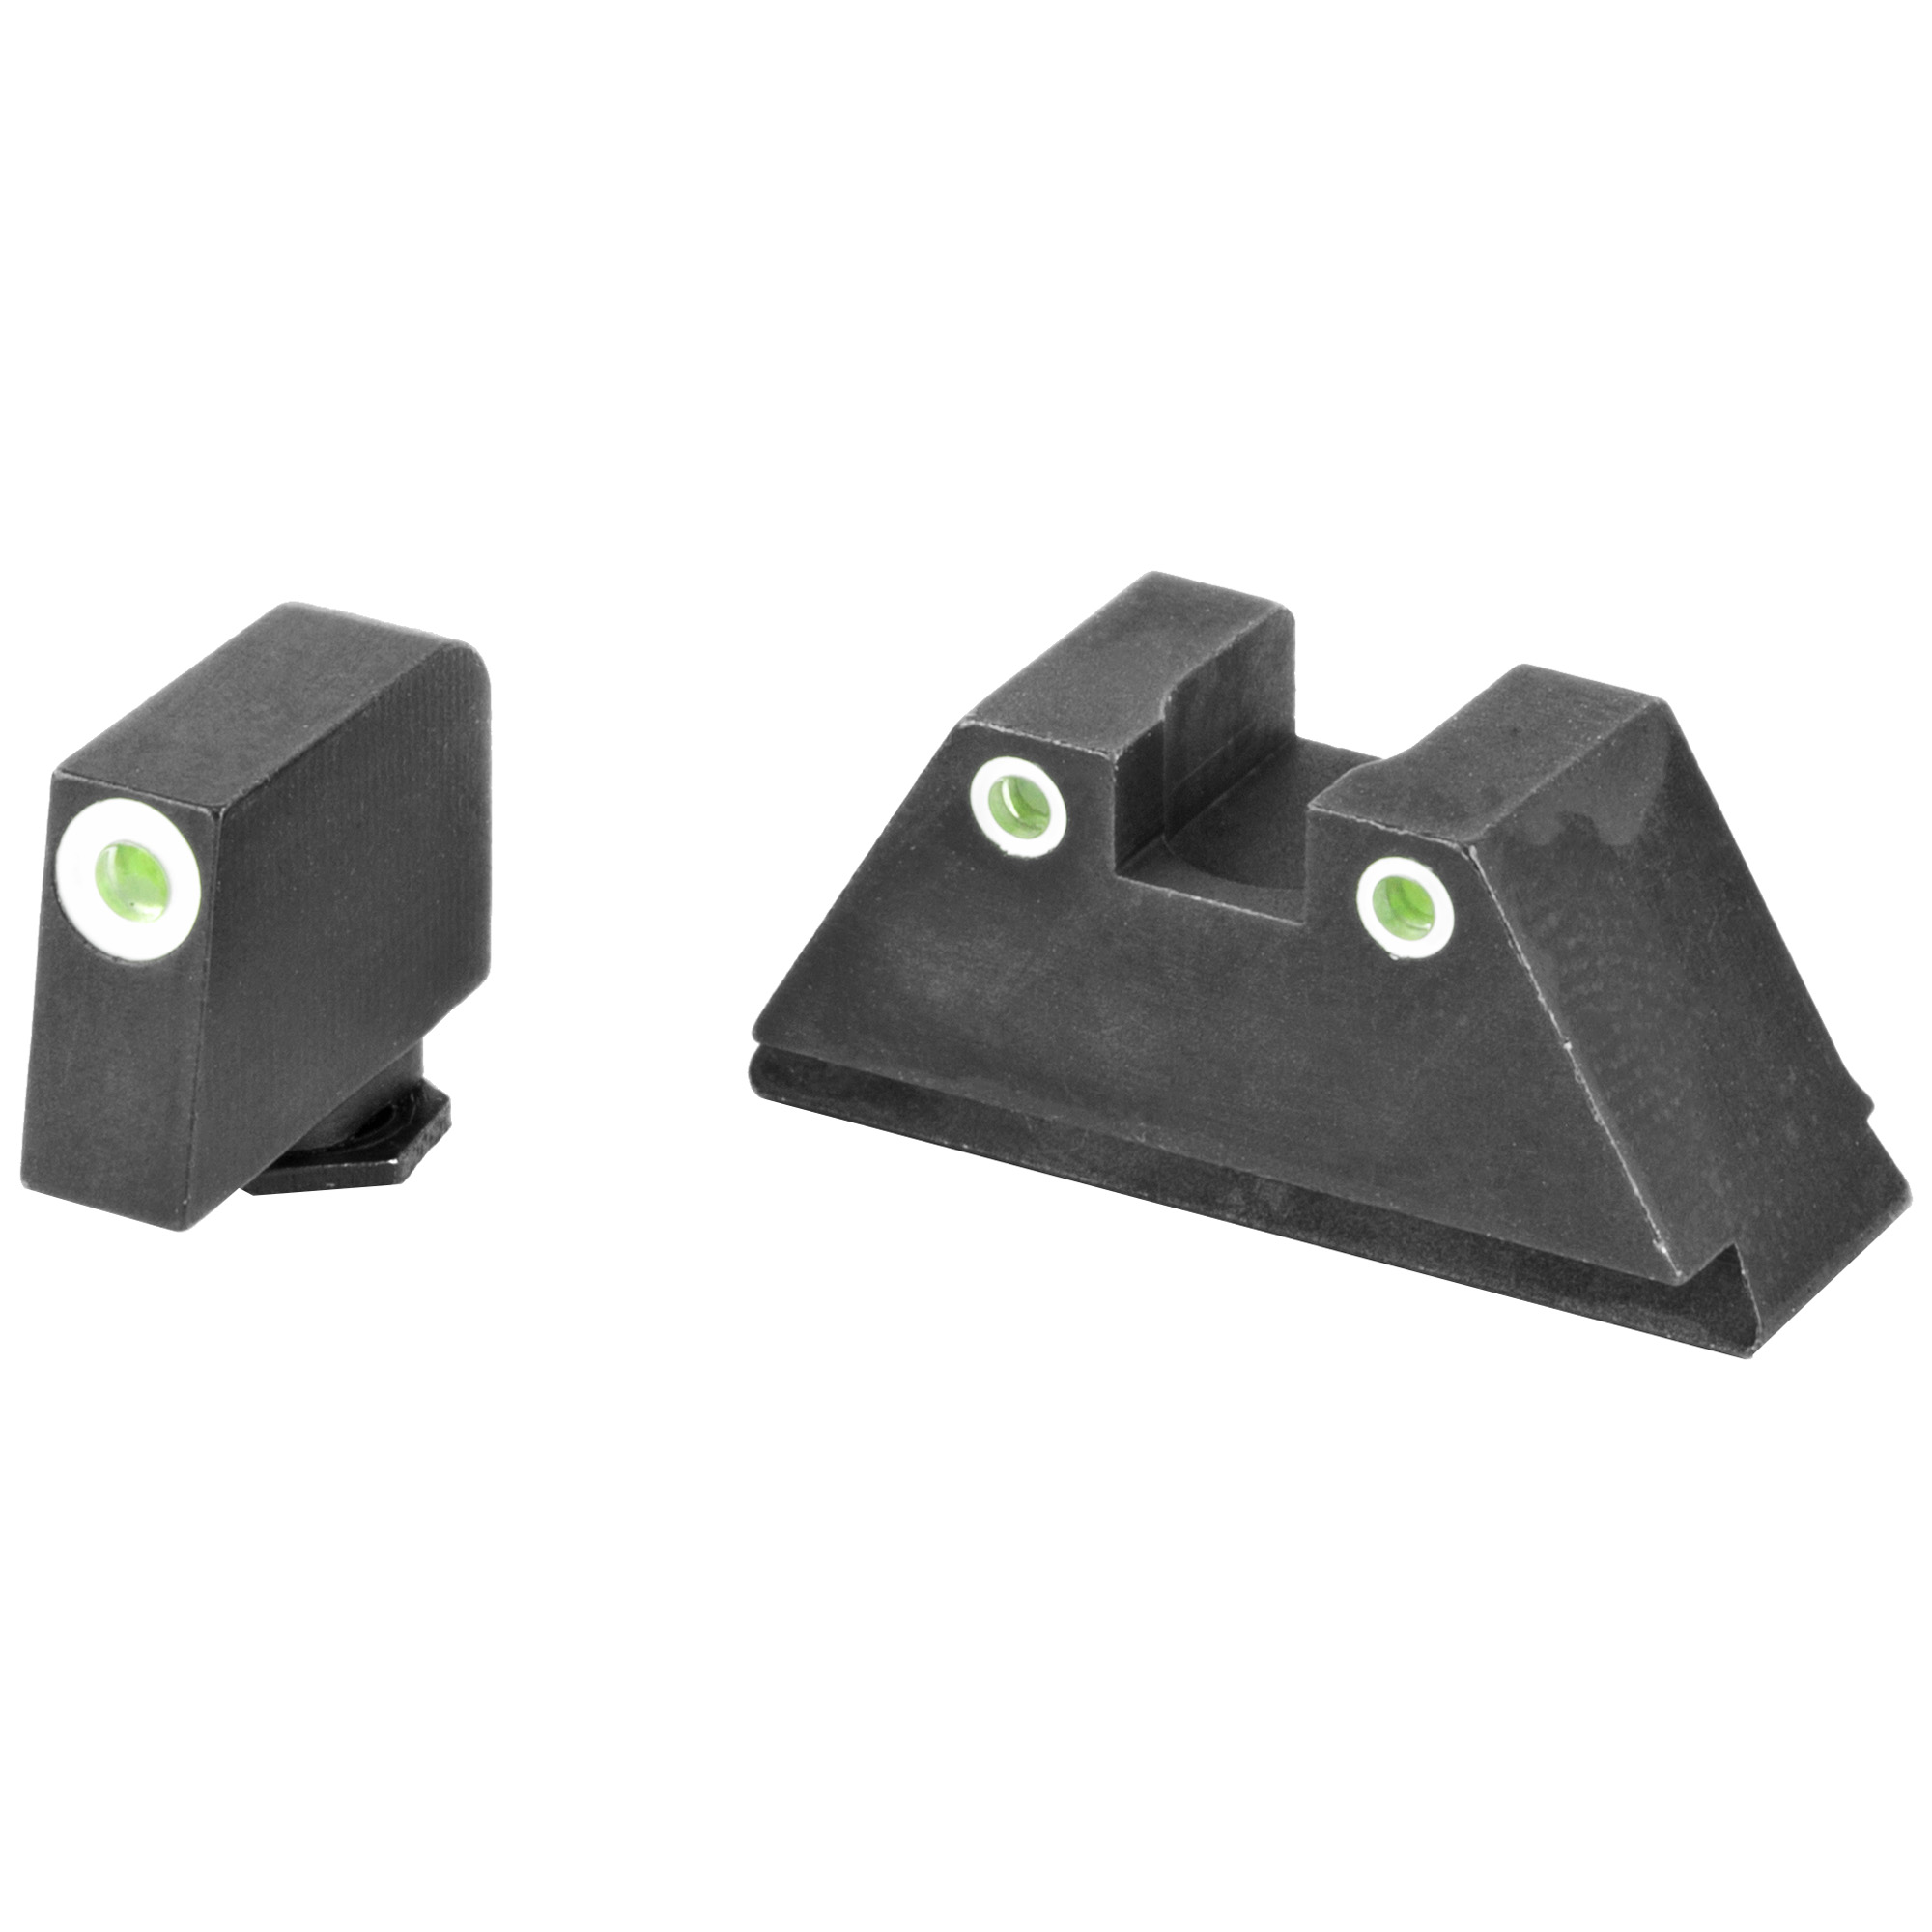 """AmeriGlo suppressor height sets provide an elevated sight picture"""" able to co-witness with slide-mounted miniature red dot optics and suppressors. For more information on how to choose the correct height set for your suppressor or optic"""" visit the AmeriGlo website"""" under the """"INFO"""" tab."""